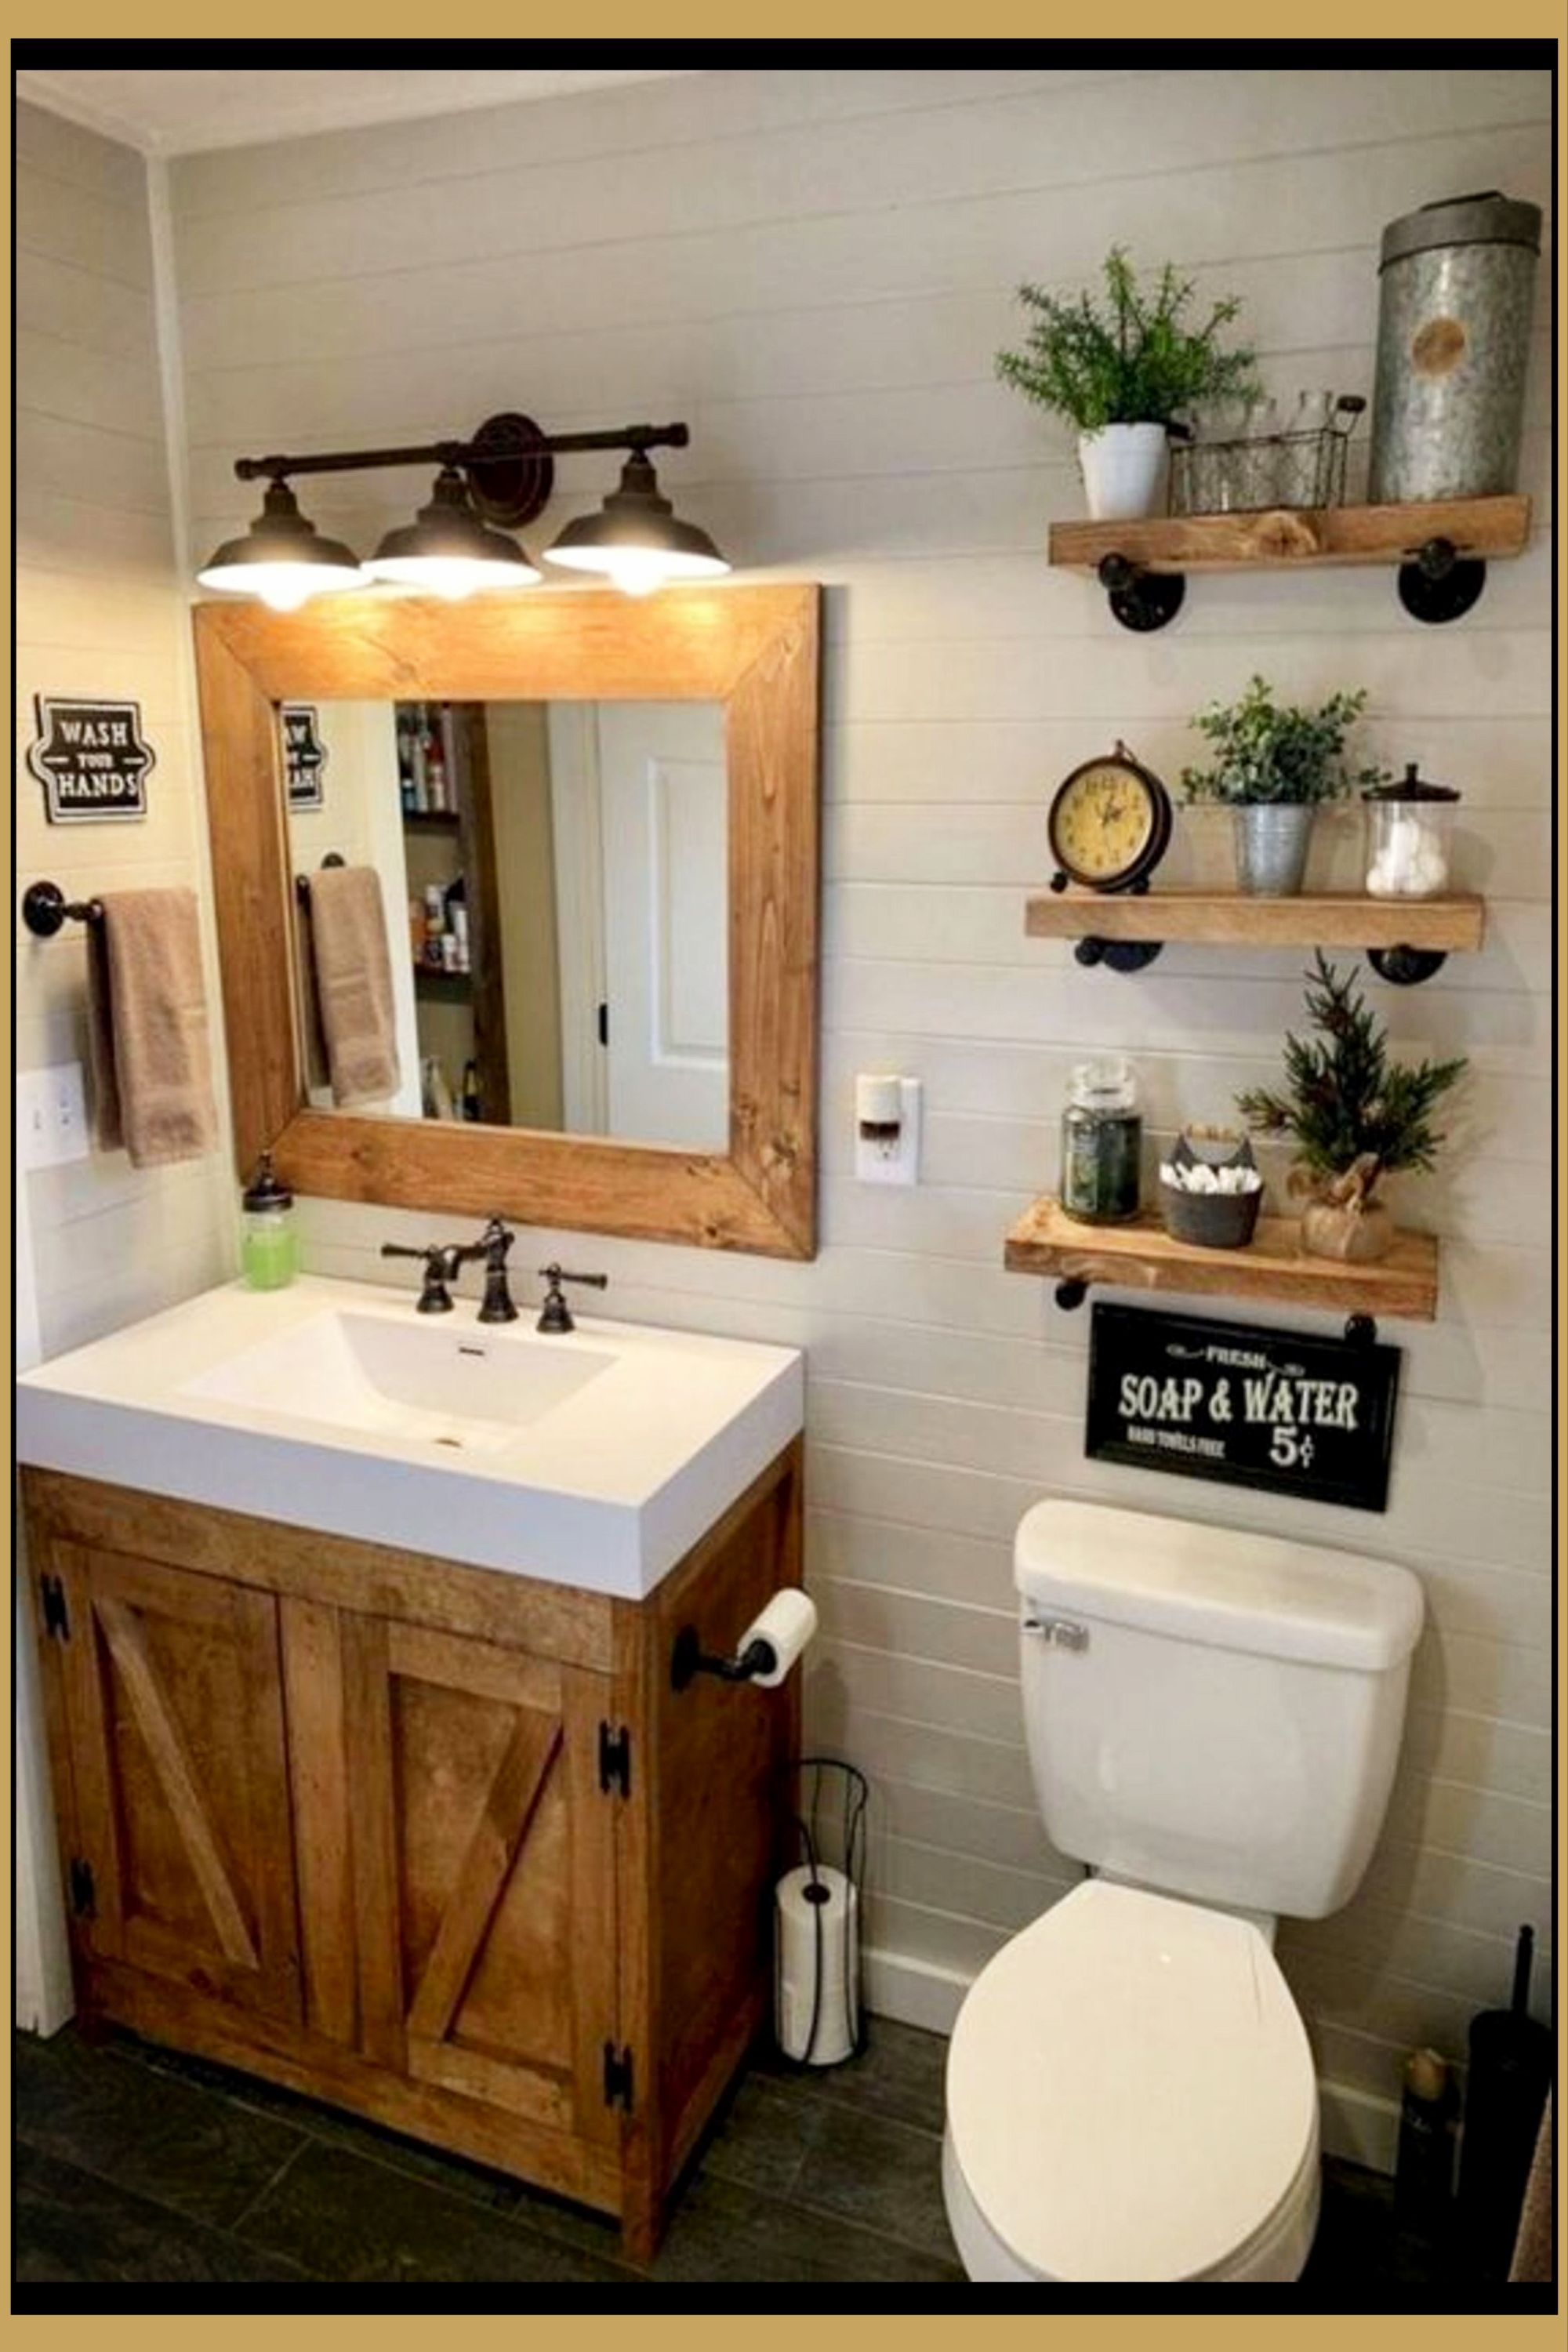 Outhouse Bathroom Ideas Cute Diy Ideas For A Rustic Country Farmhouse Bathroom Outhouse Bathroom Decor Outhouse Bathroom Rustic Bathroom Remodel